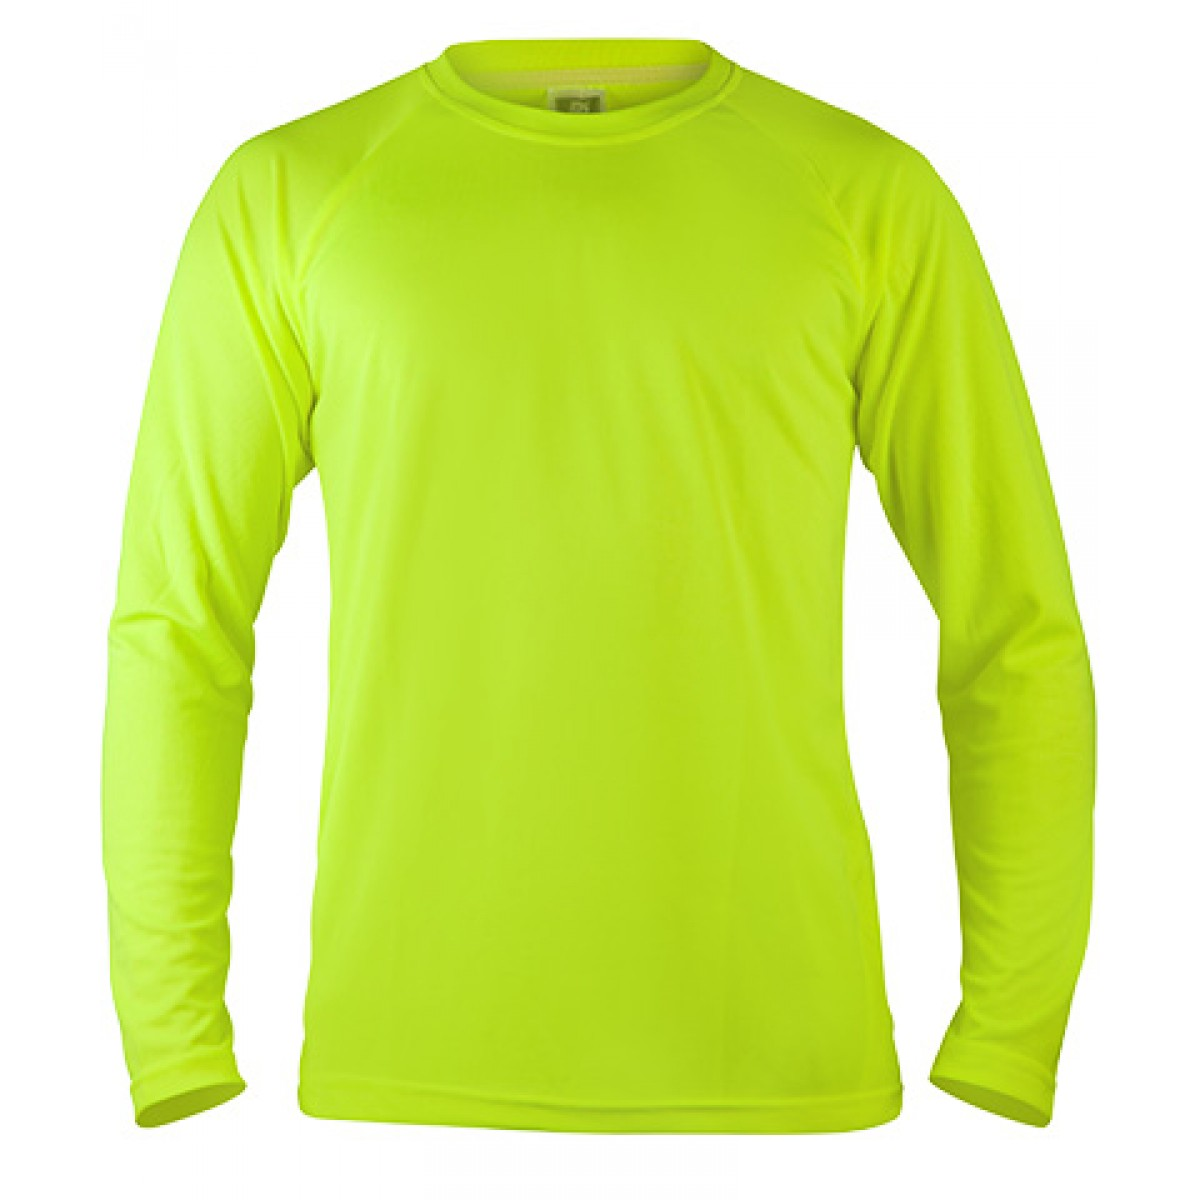 Long Sleeve Performance -Safety Green-2XL